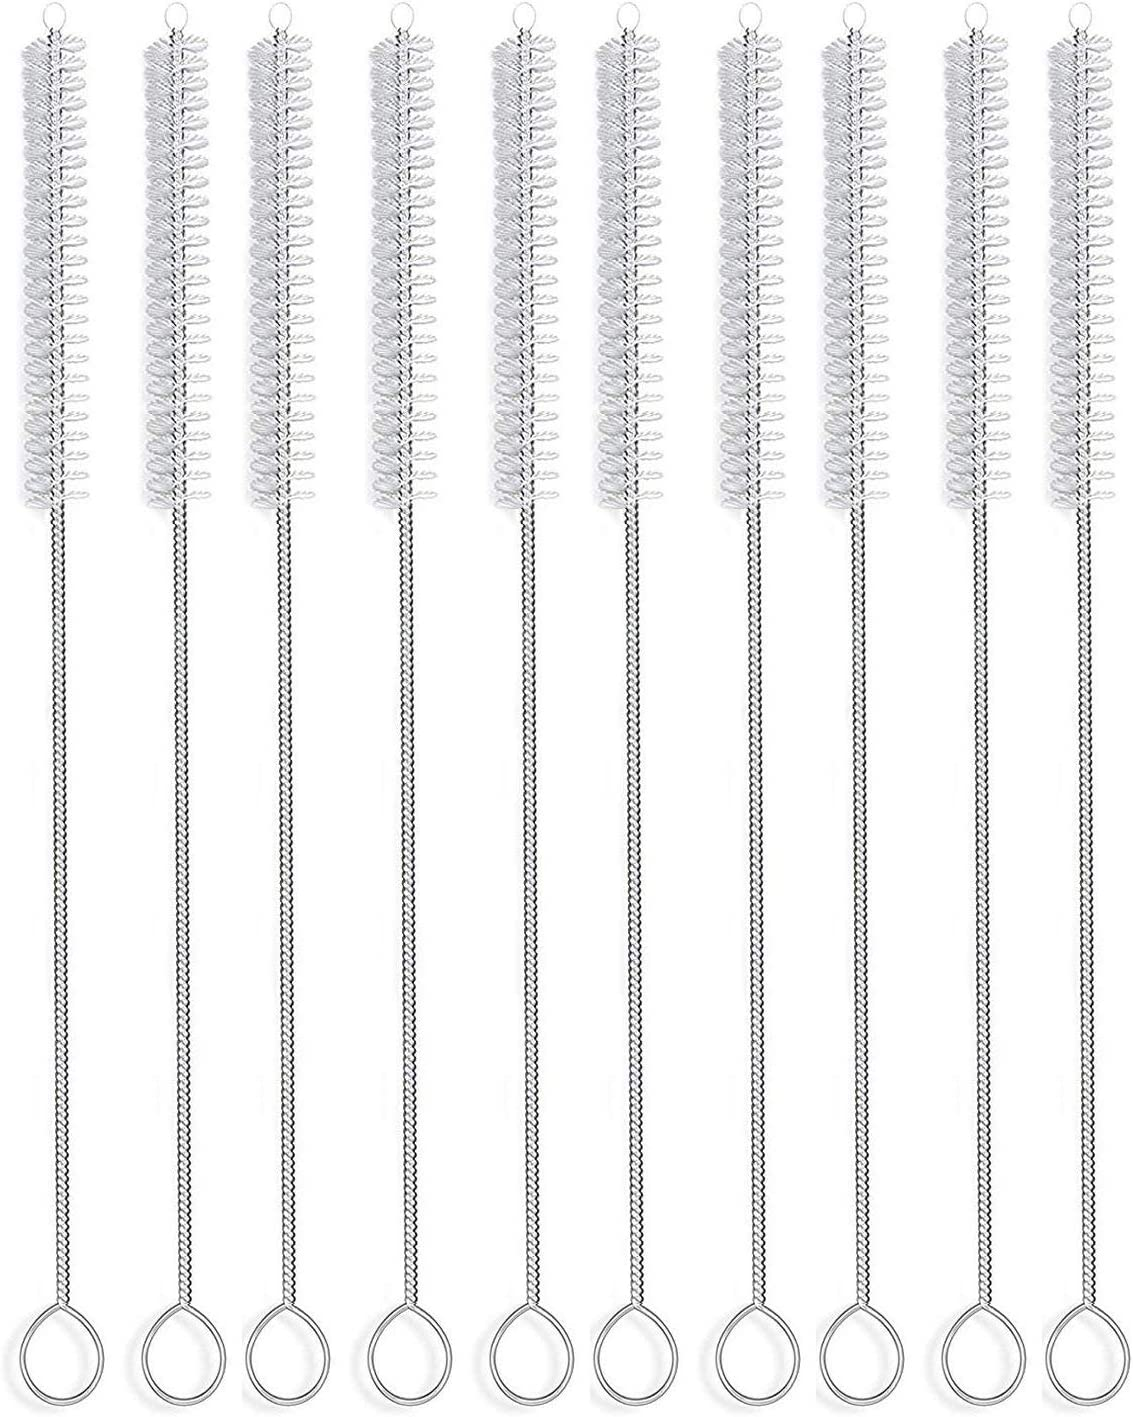 Straw Brush Nylon Pipe Tube Cleaner Be super welcome set Opening large release sale X of 2 5-inch 8.2-ihch